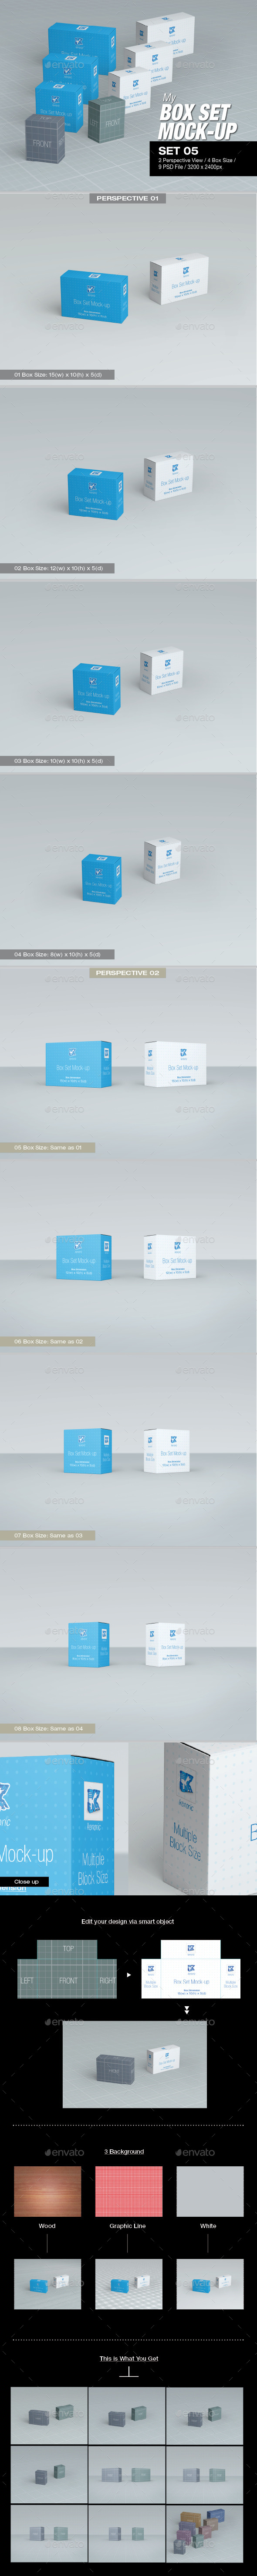 GraphicRiver MyBox Set Mock-up 05 8817690